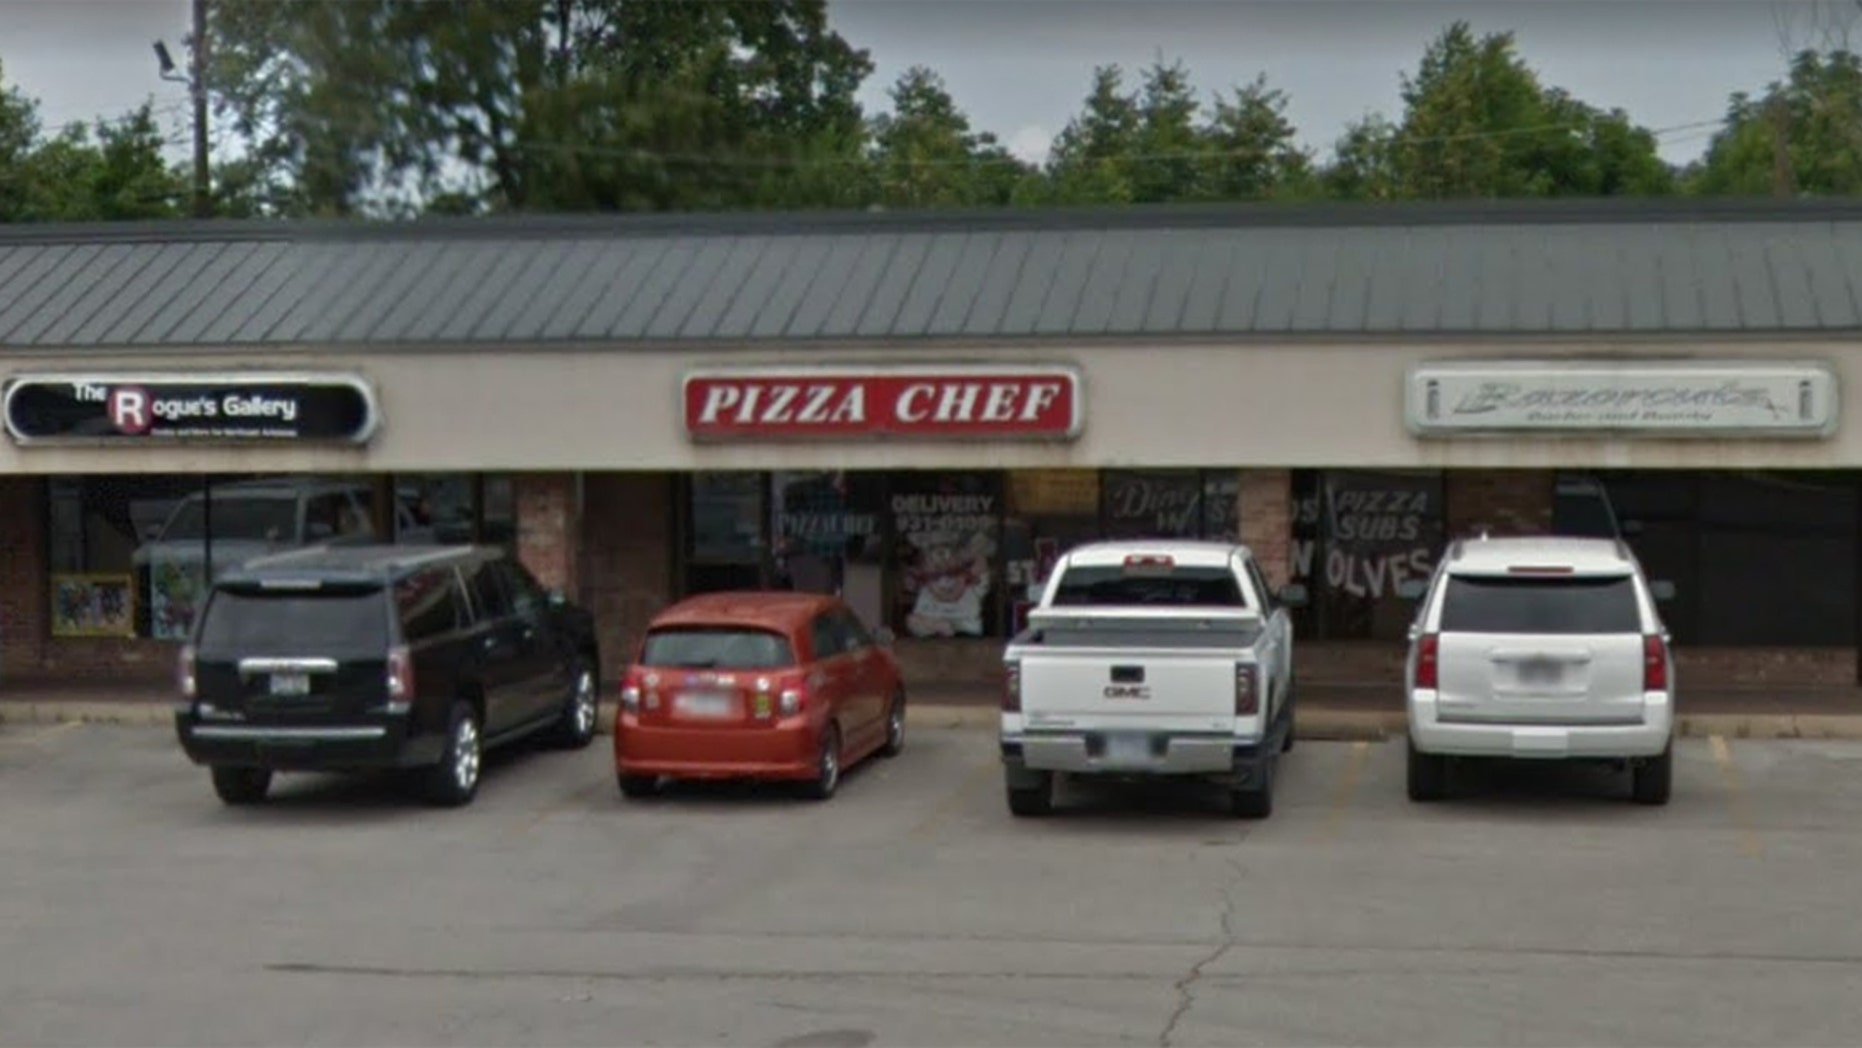 A deer crashed into Pizza Chef restaurant in Arkansas.